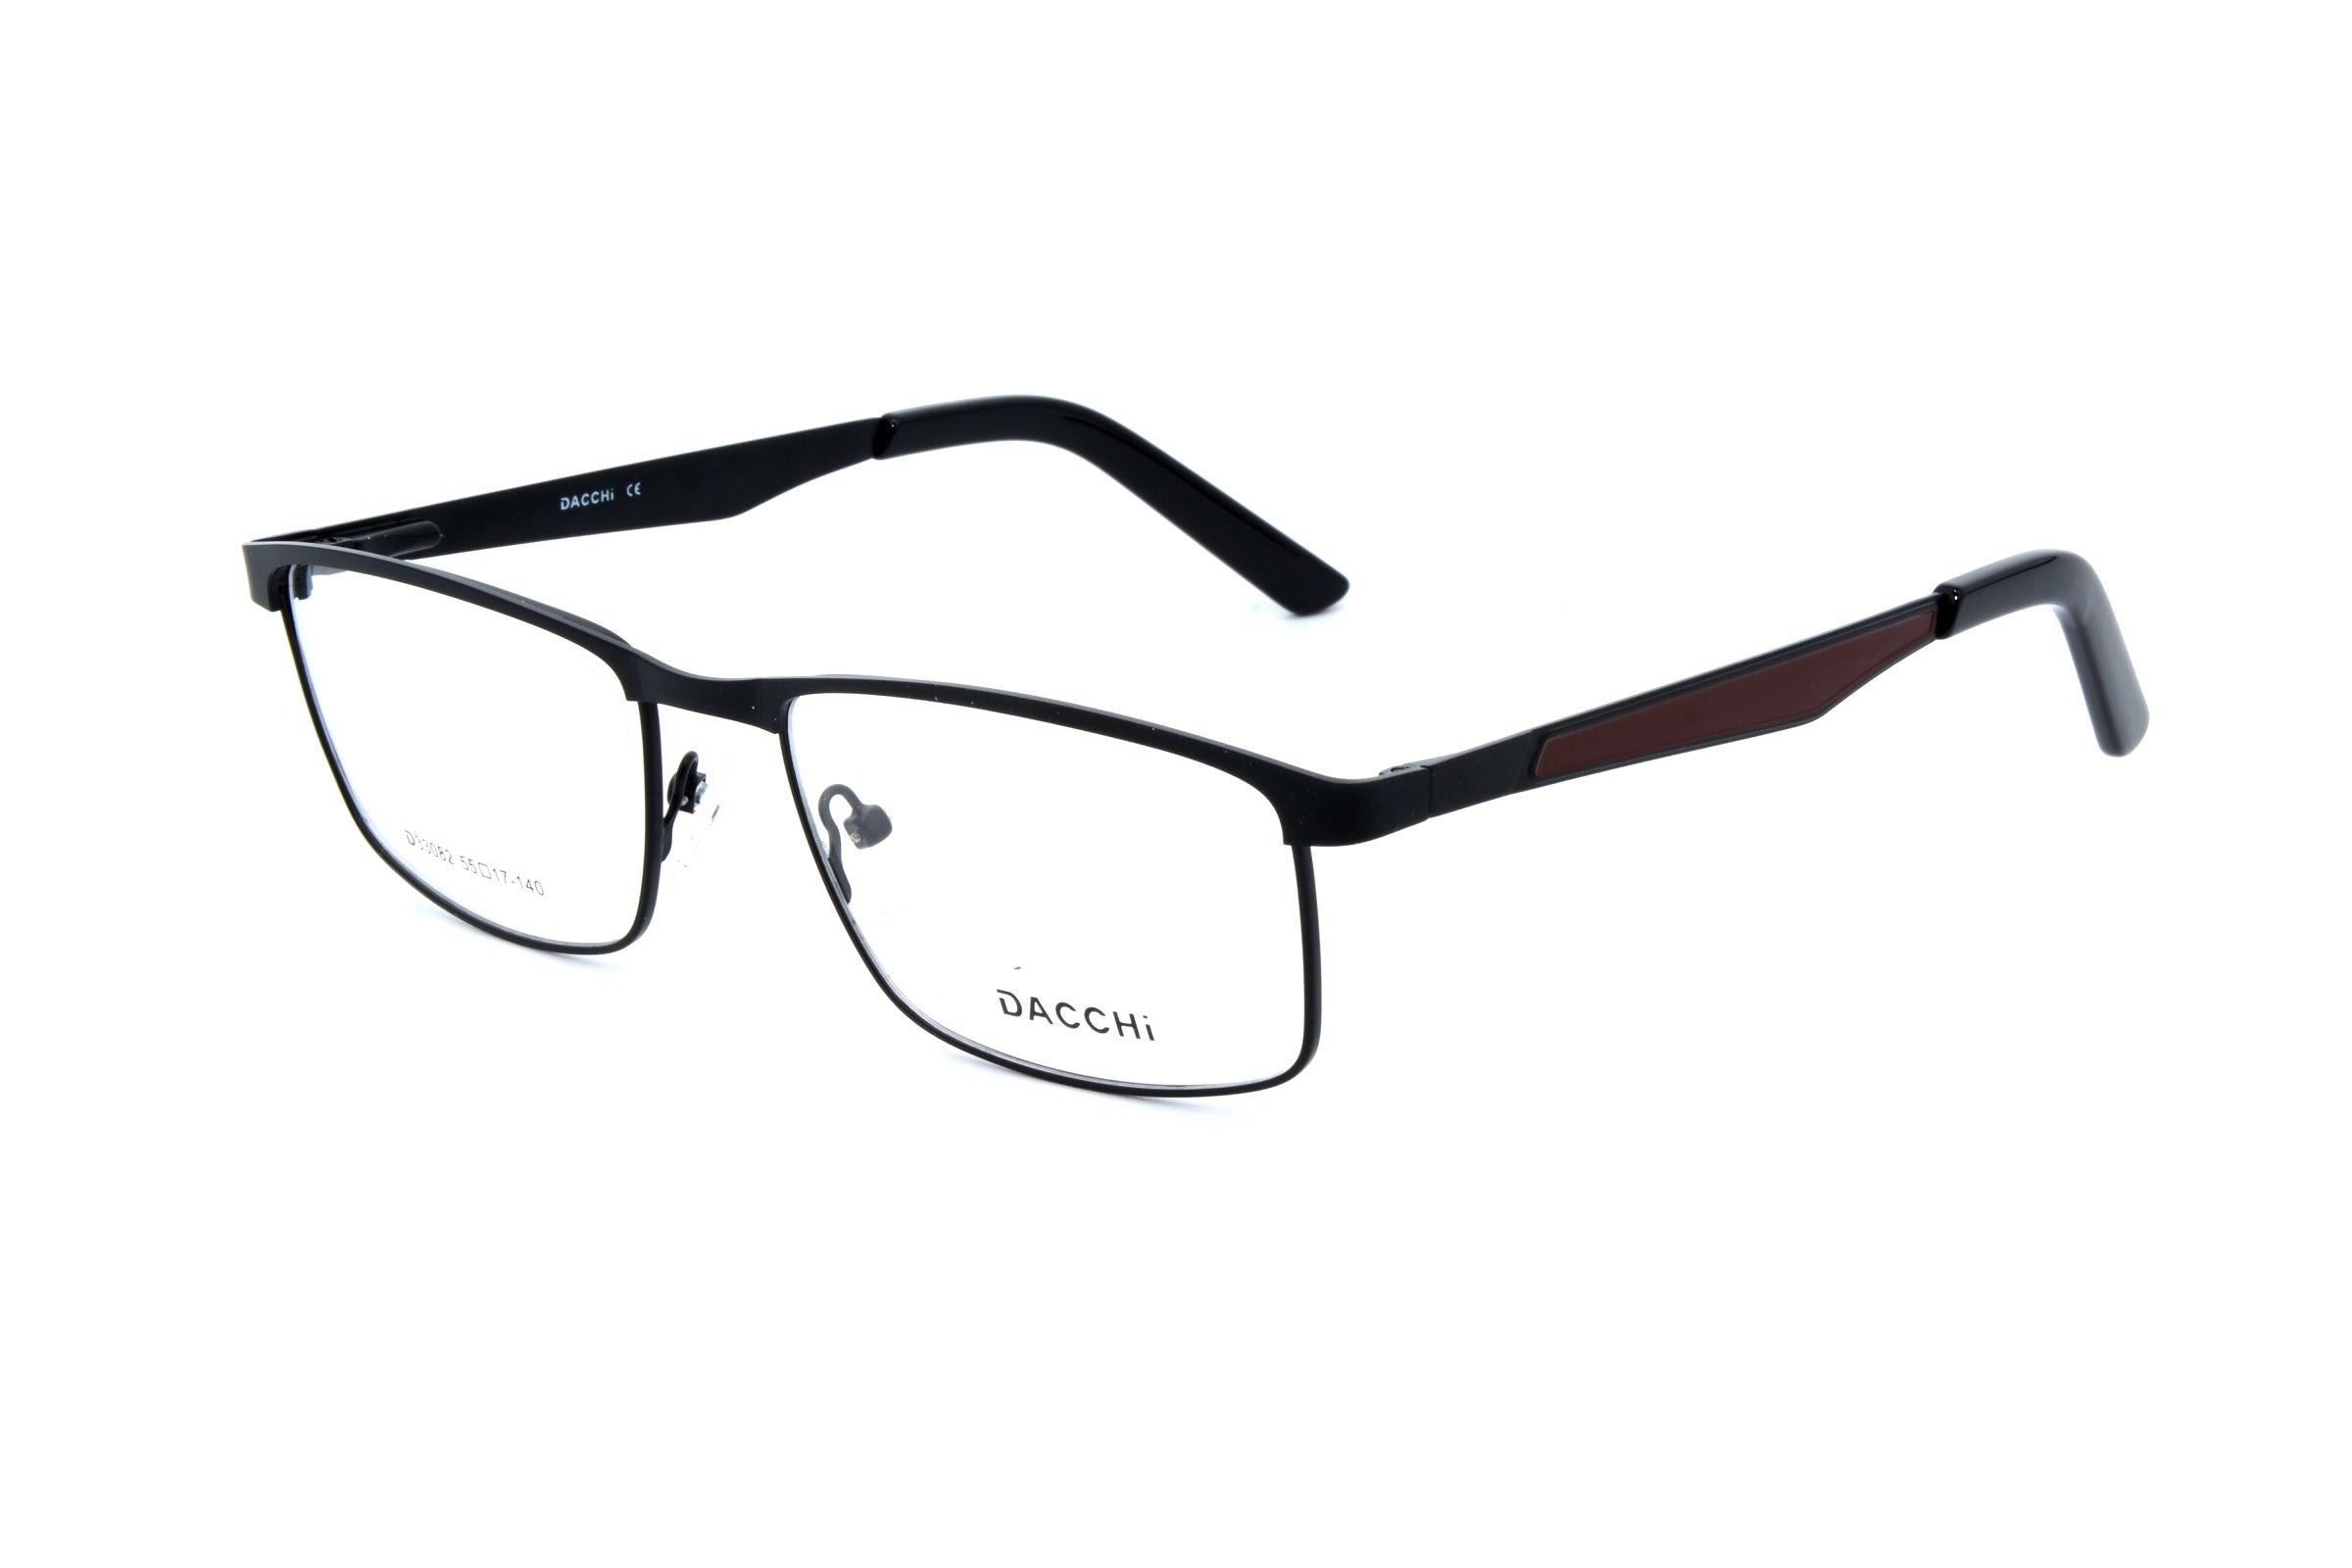 Dacchi eyewear 33082, C1 - Optics Trading